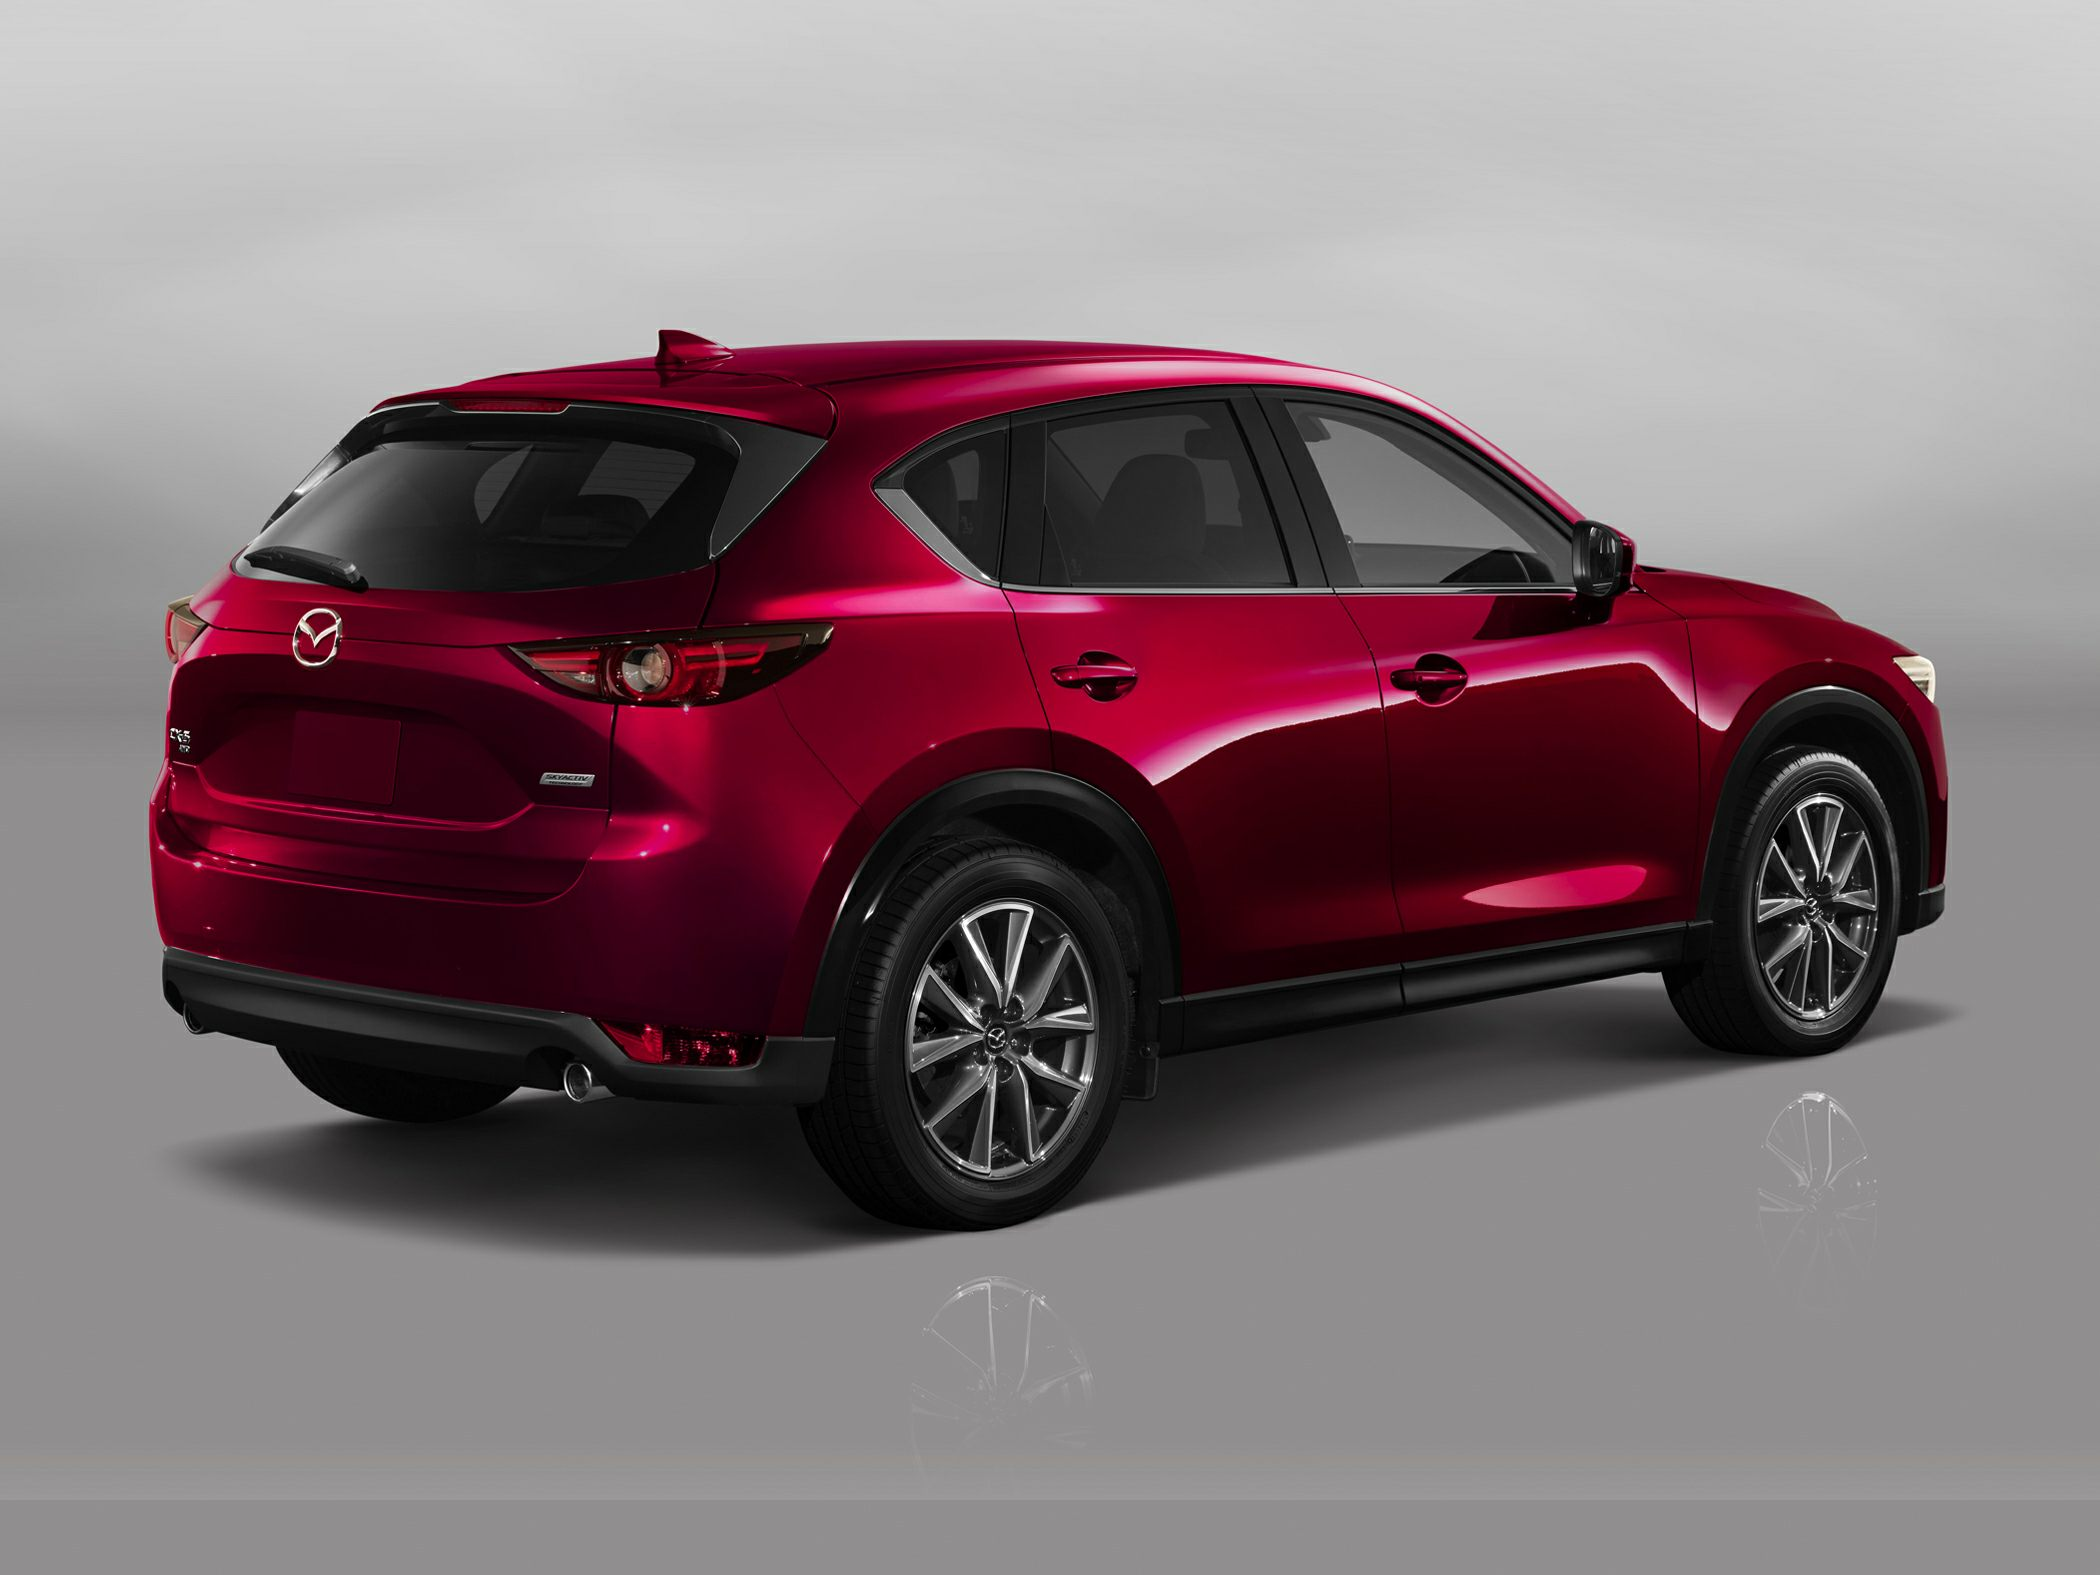 See 2018 Mazda CX-5 Color Options - CarsDirect